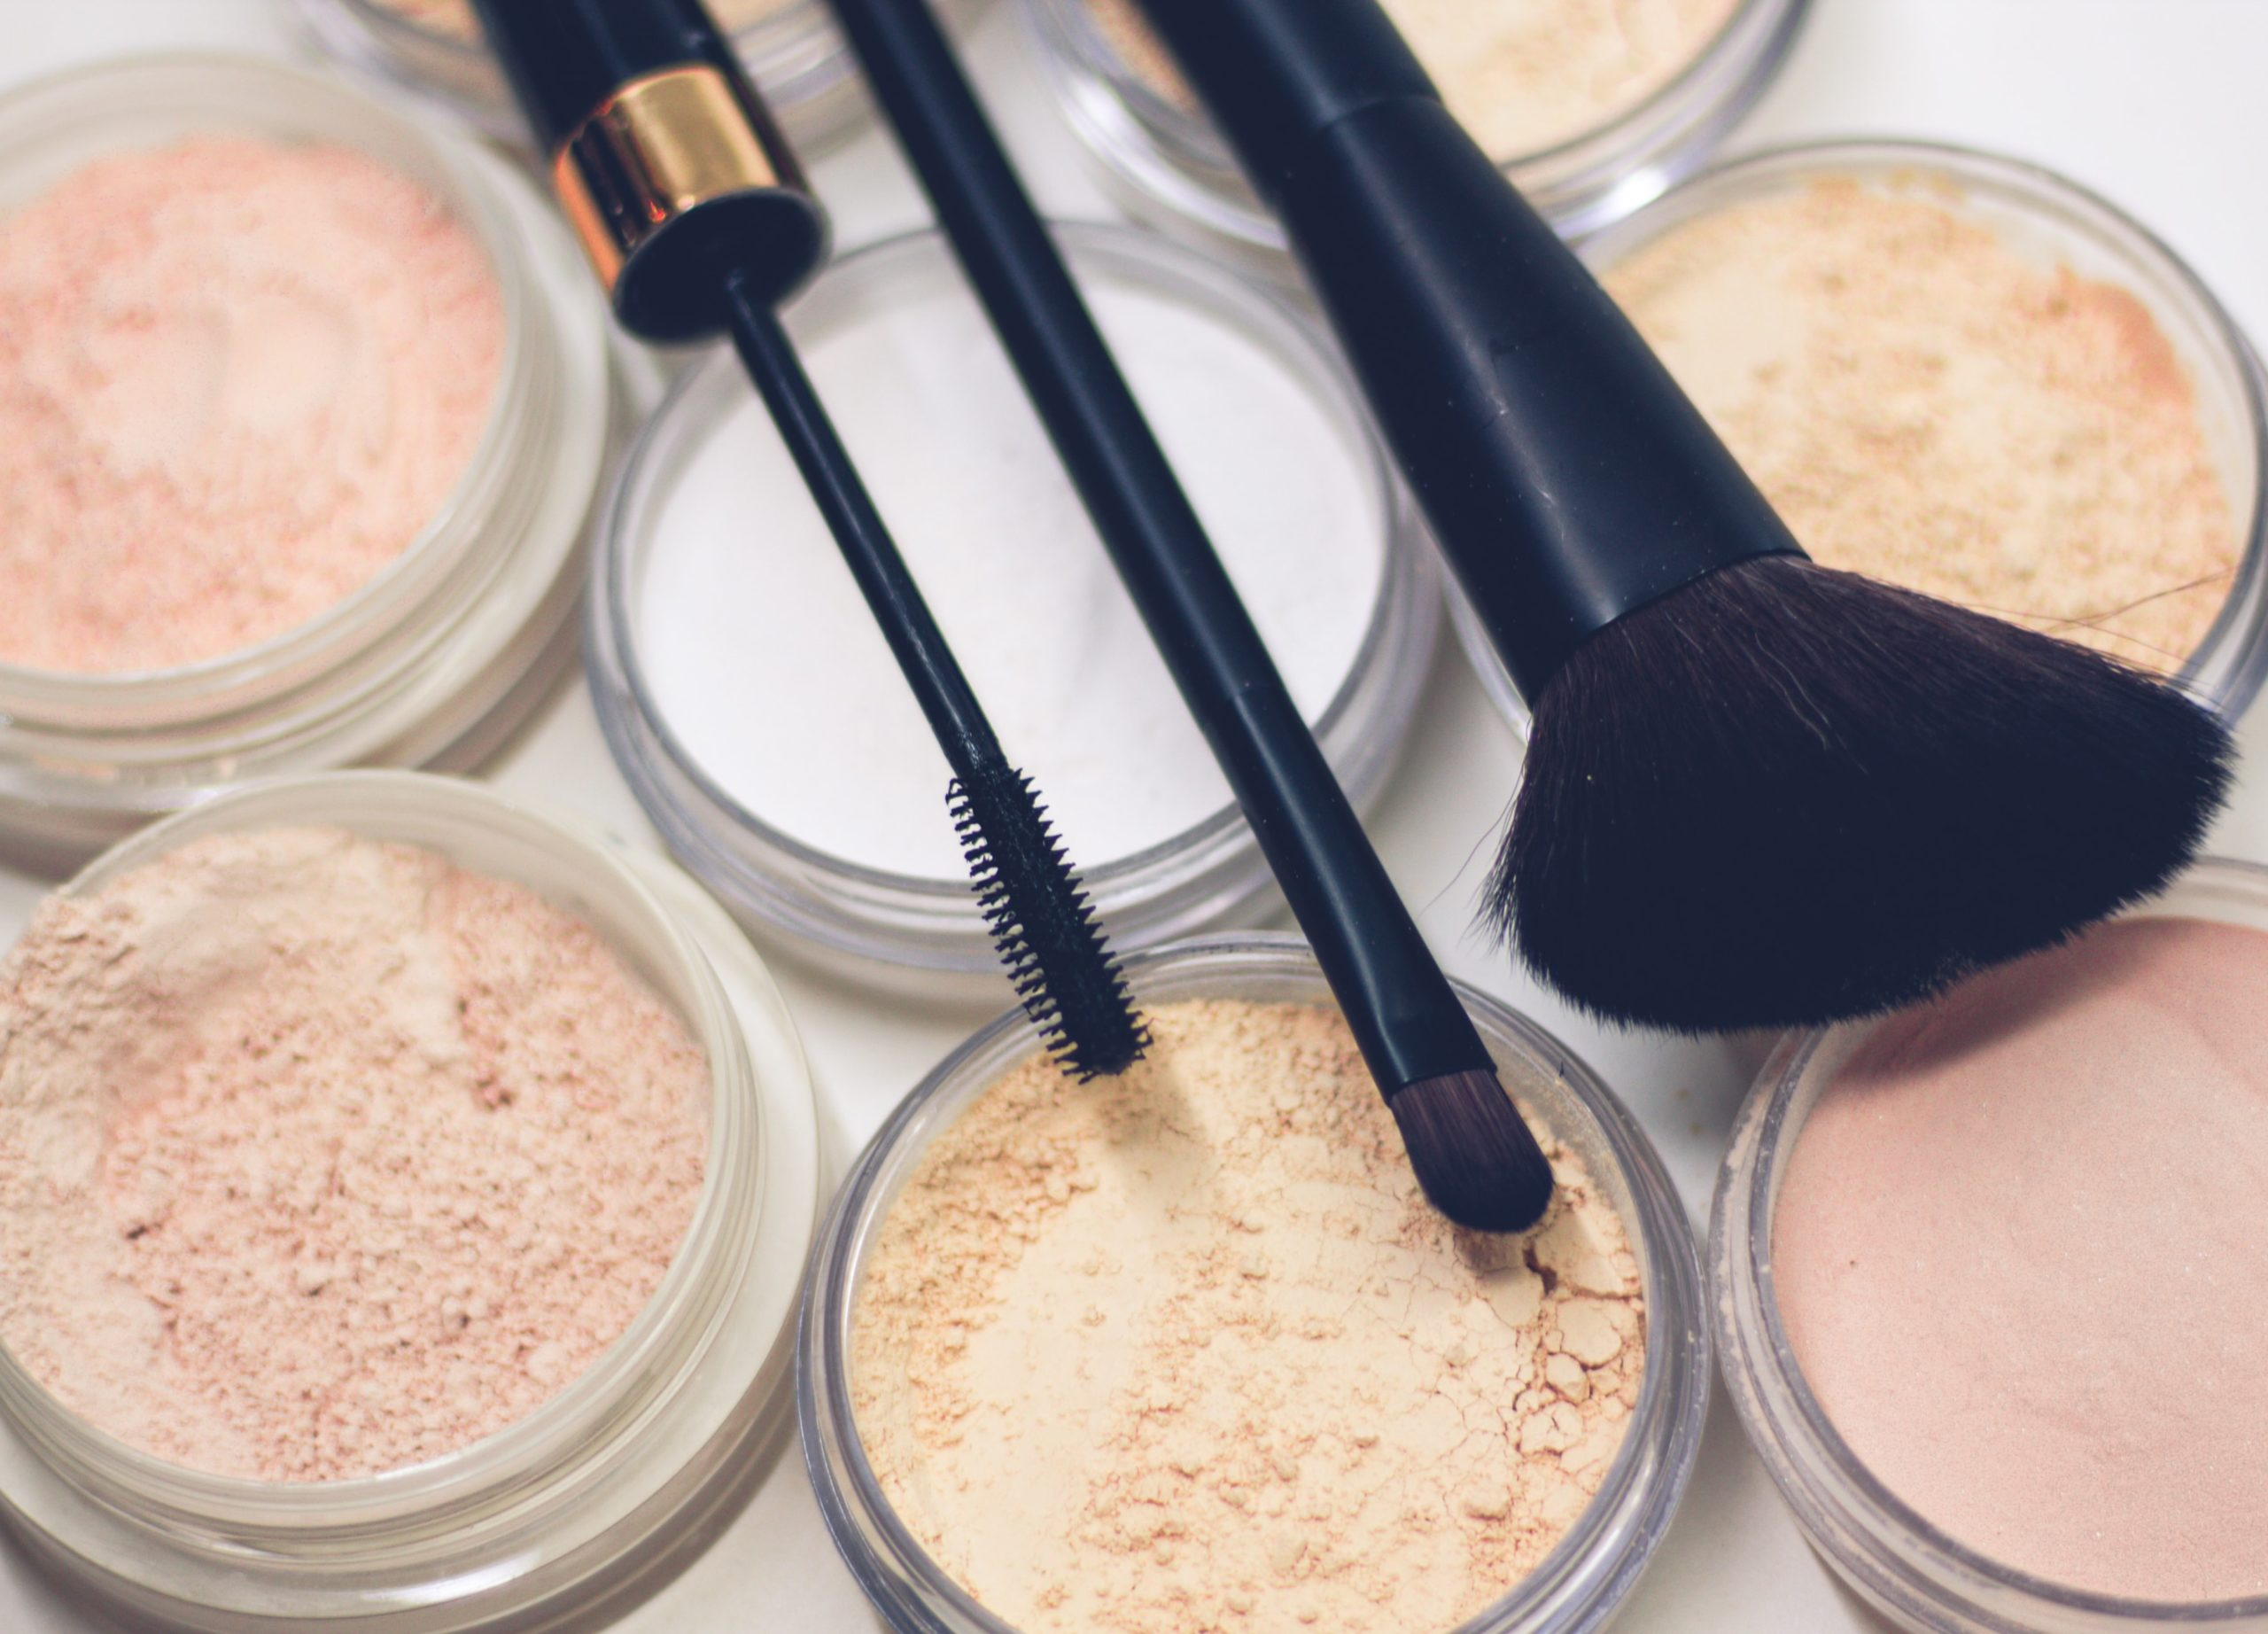 8 Best Setting Powders for Dry Skin in 2021